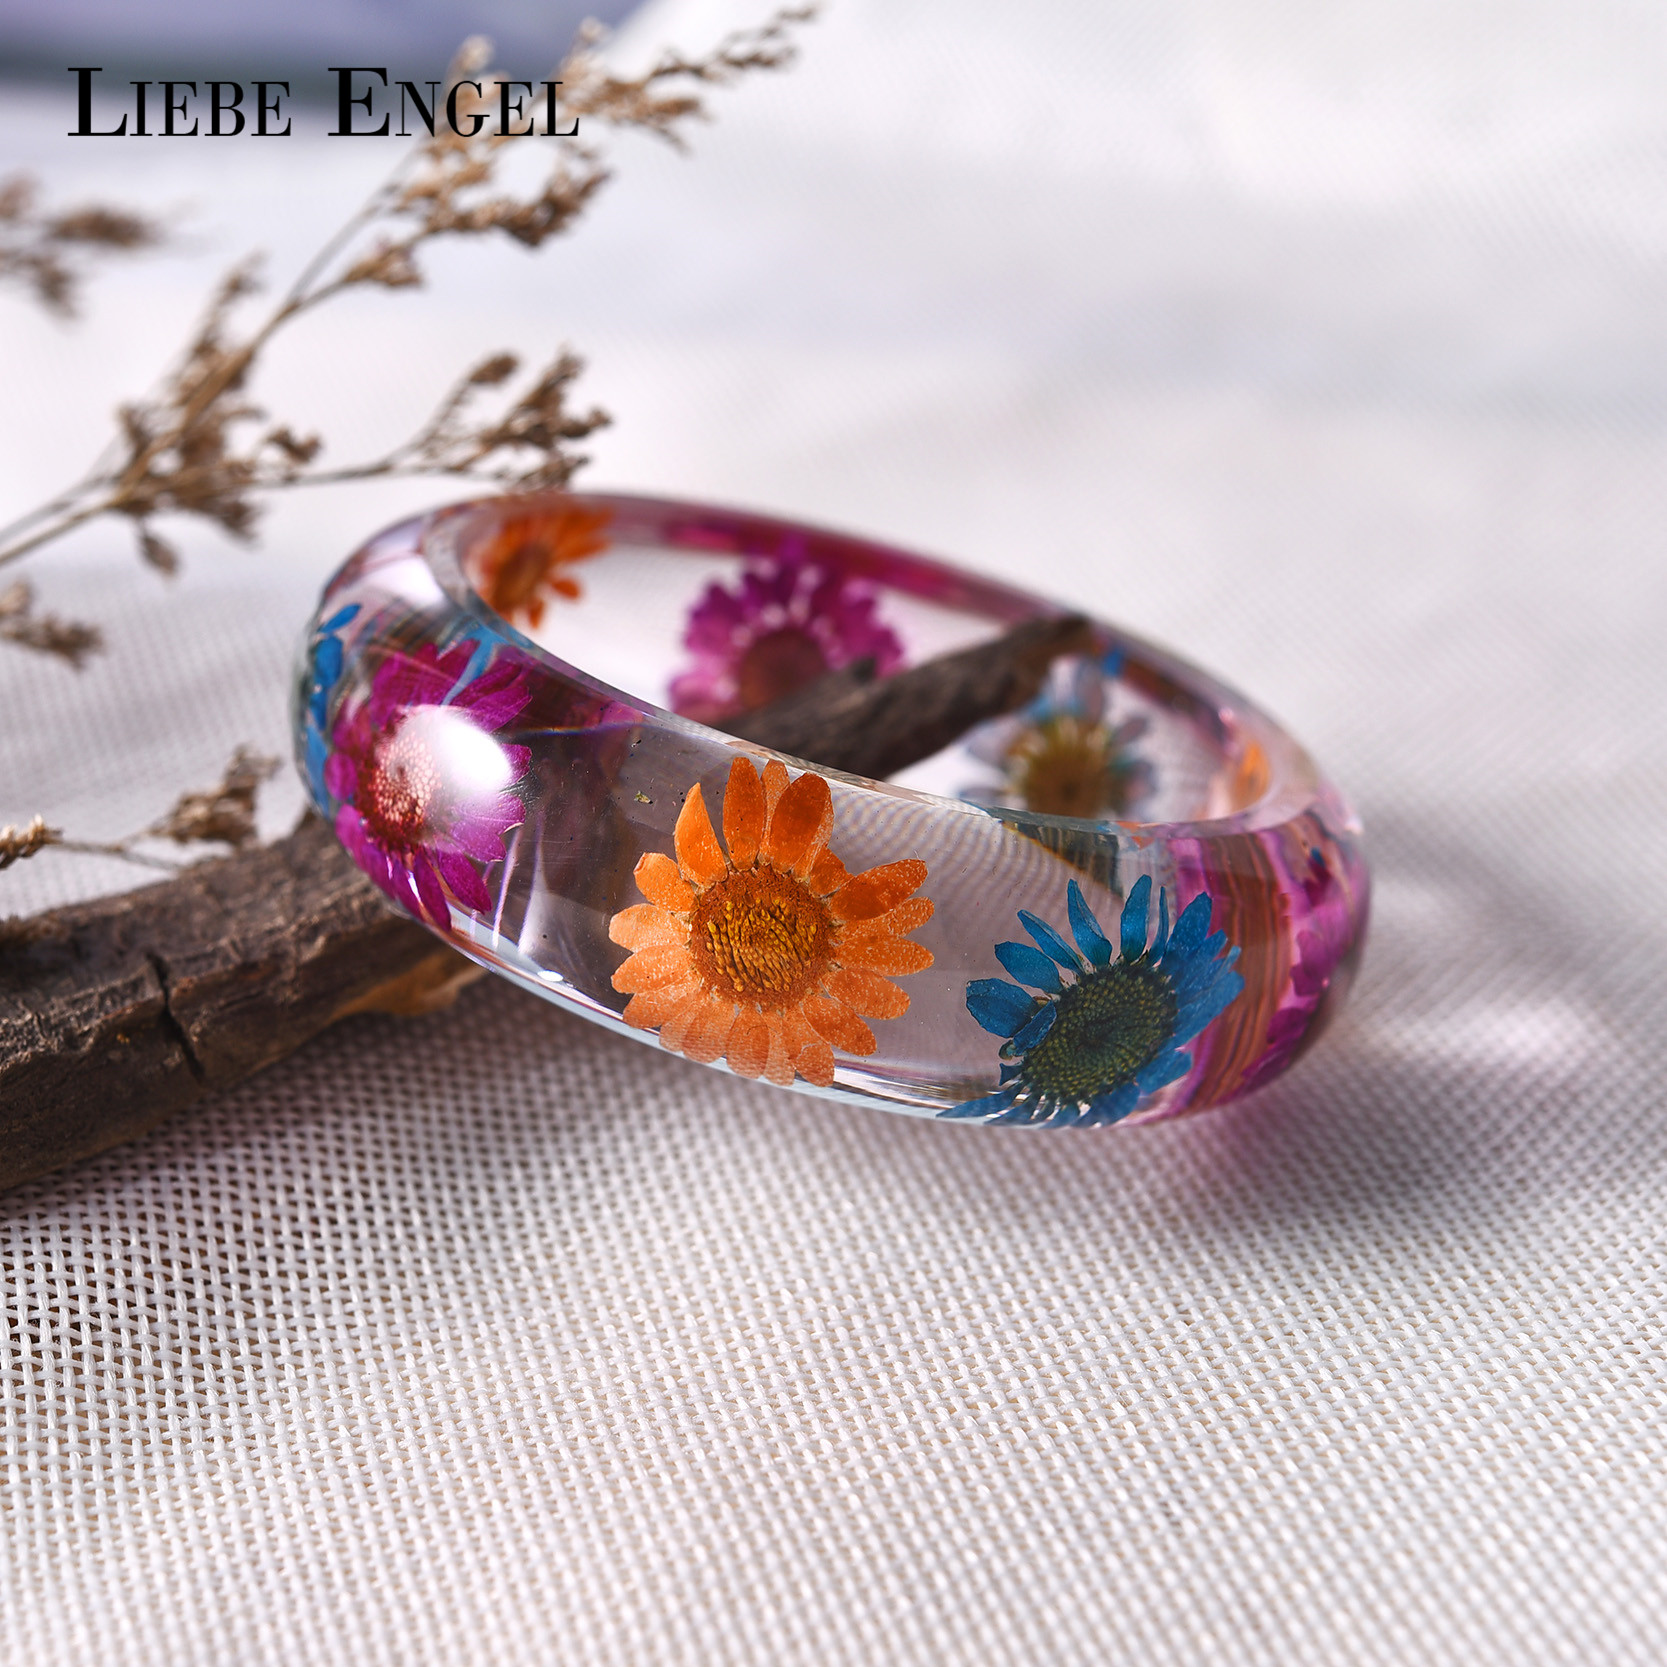 LIEBE ENGEL Real Colorful Dried Flower Resin Bangle Bracelet Cuff Love Bracelet For Women Indian Jewelry